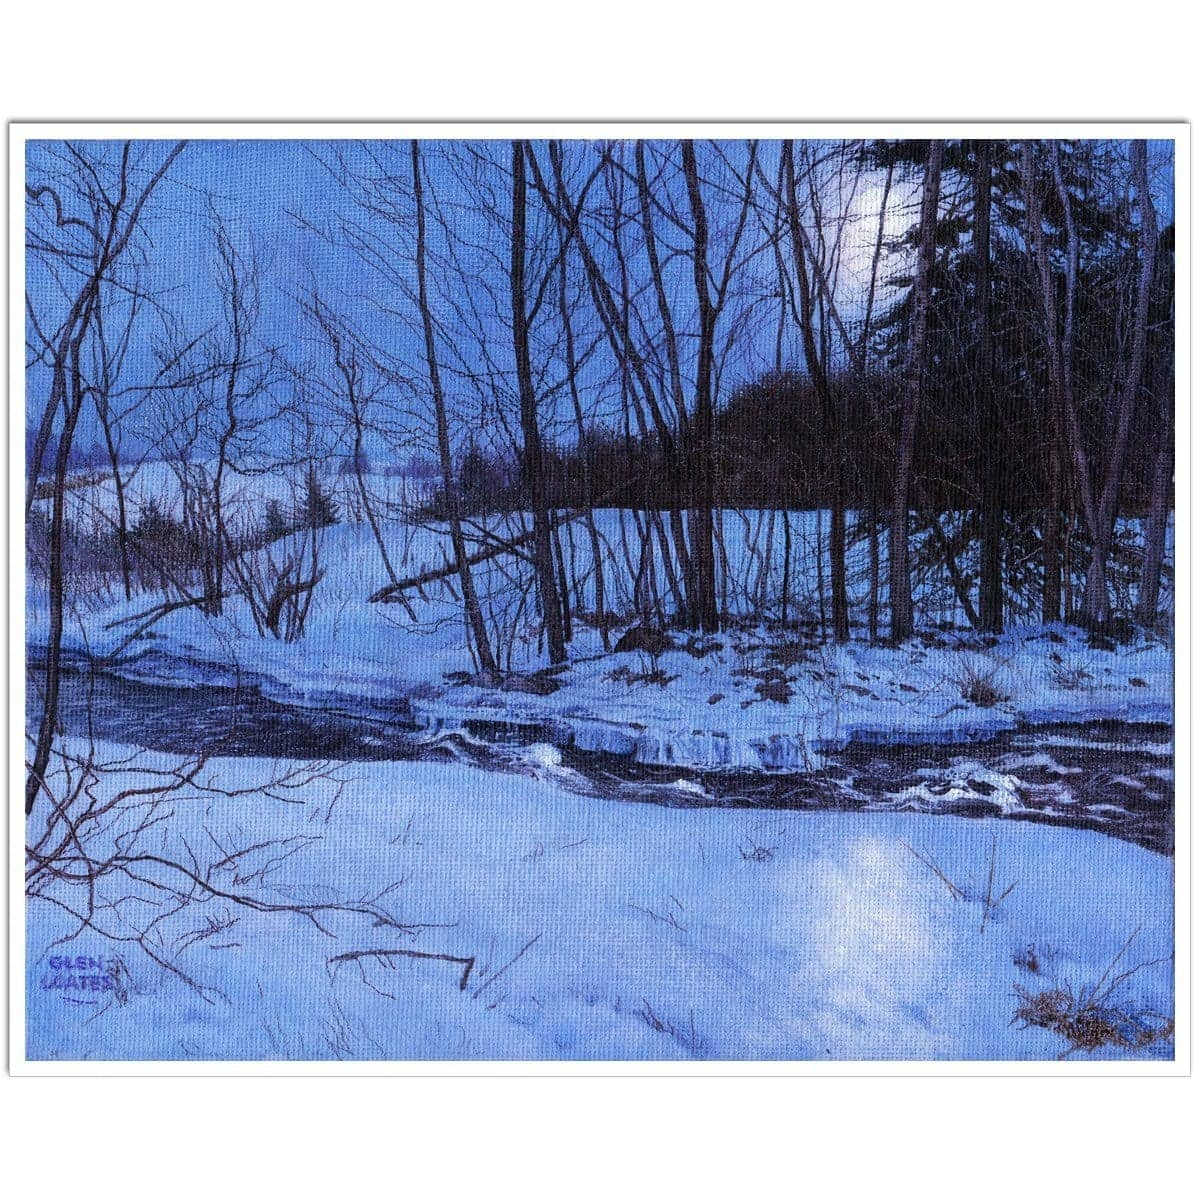 Moonlit Landscape - Art Print by Glen Loates from the Glen Loates Store